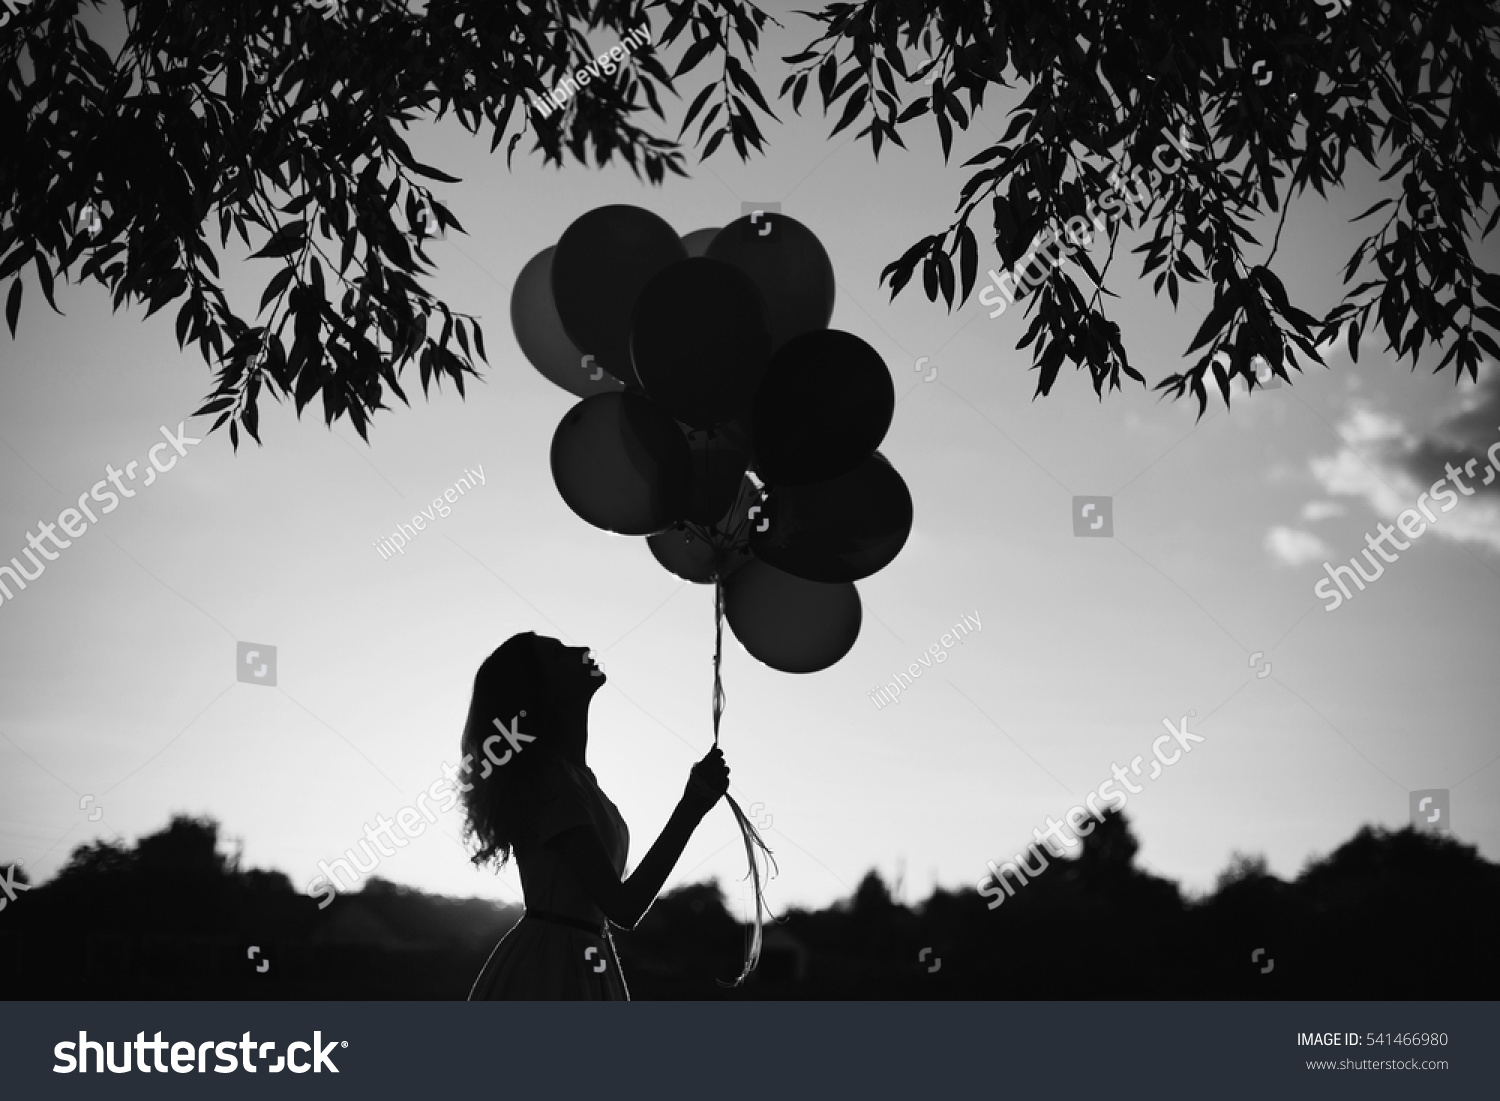 Balloons photography black and white